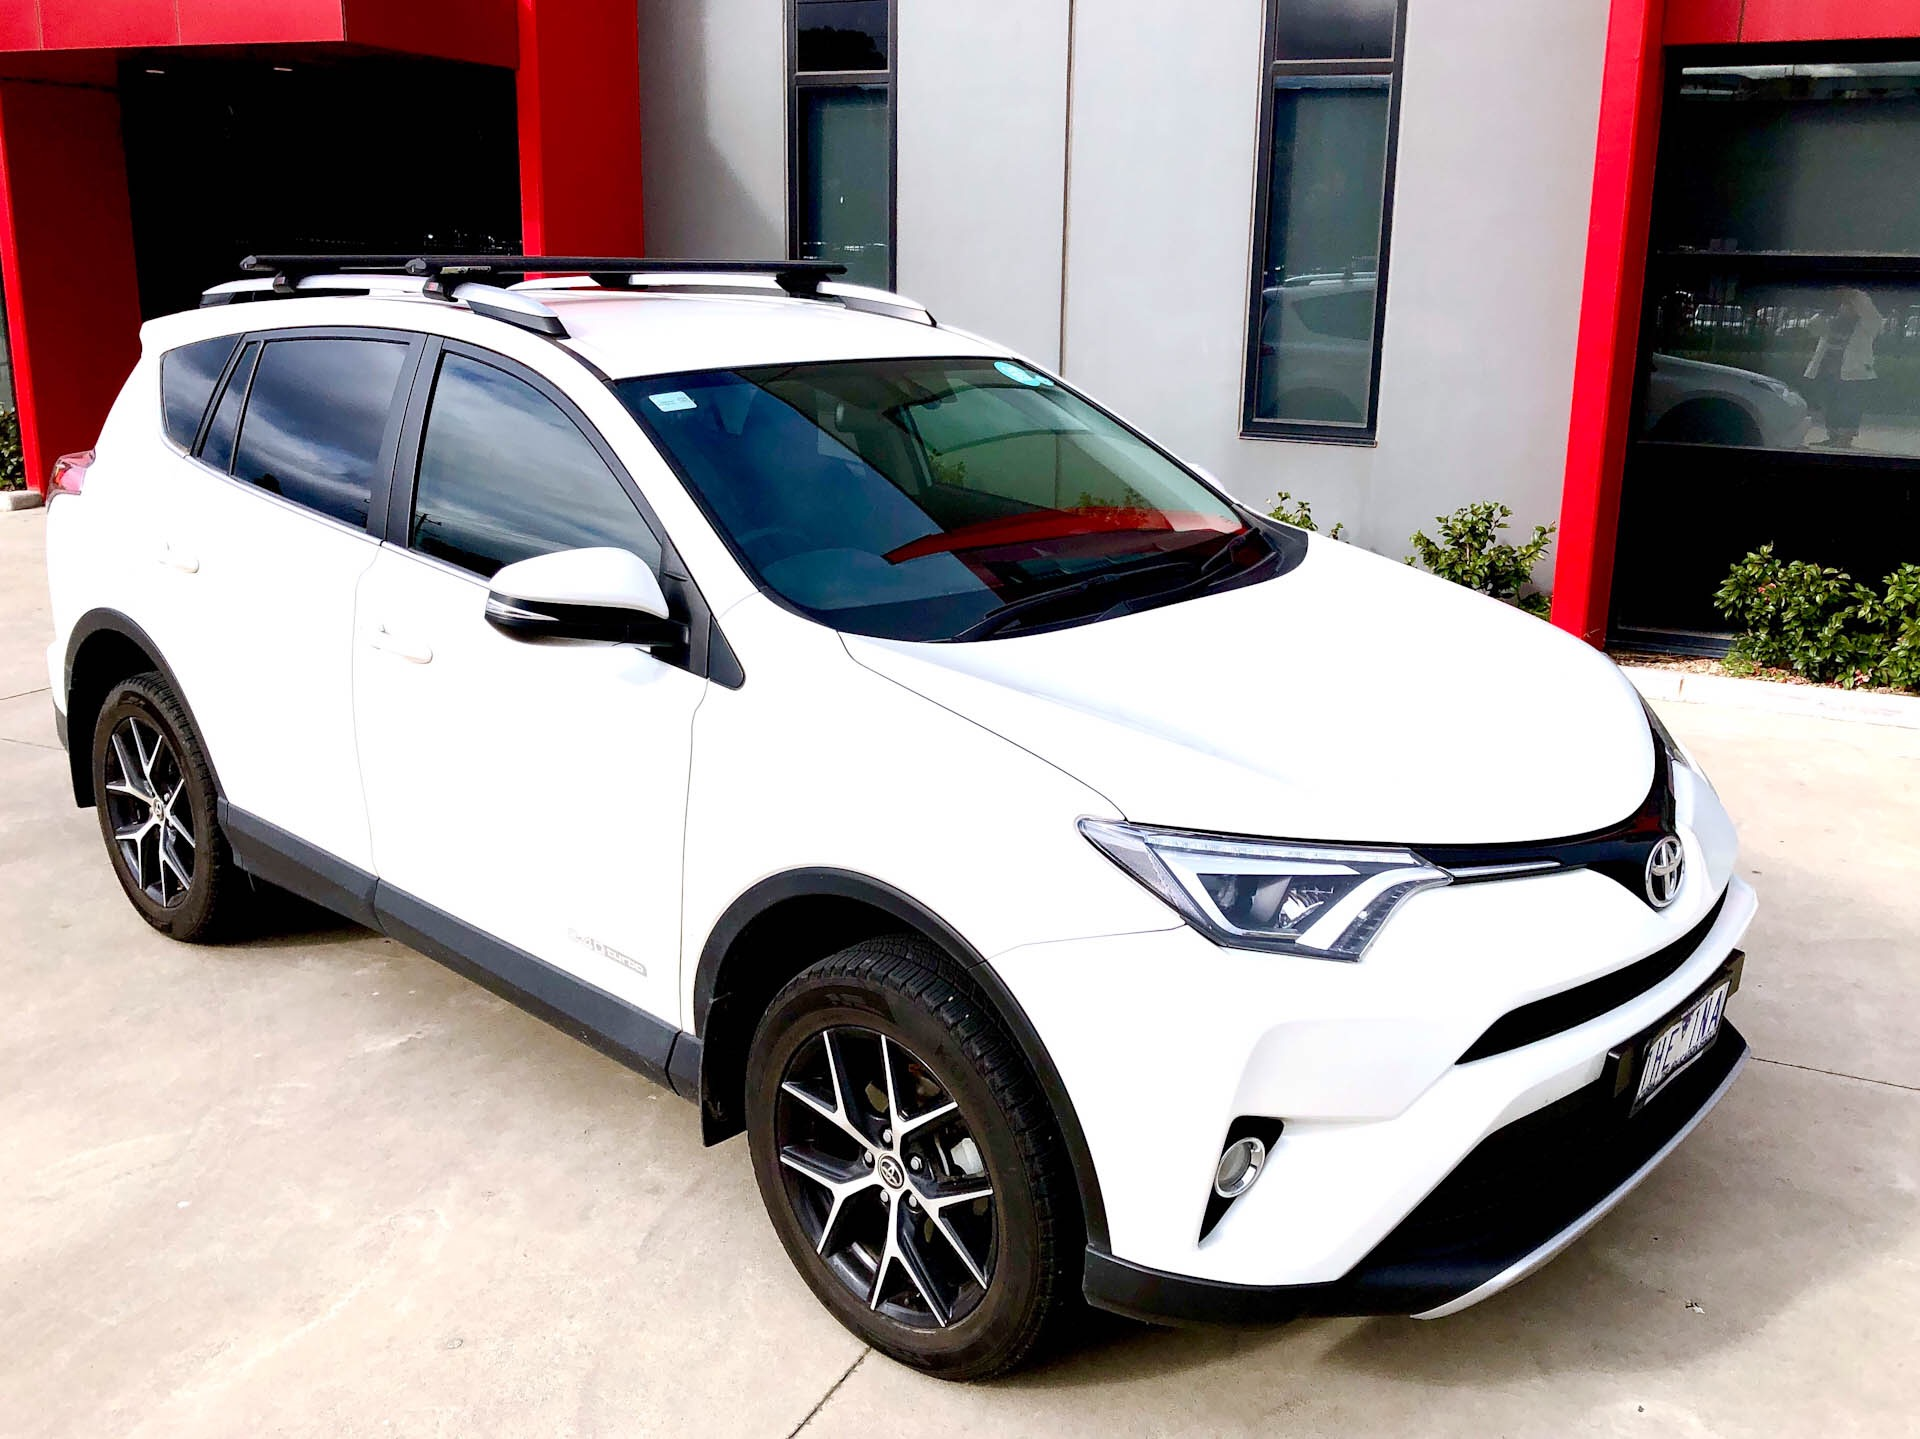 Picture of Chun Pang David's 2015 Toyota RAV4